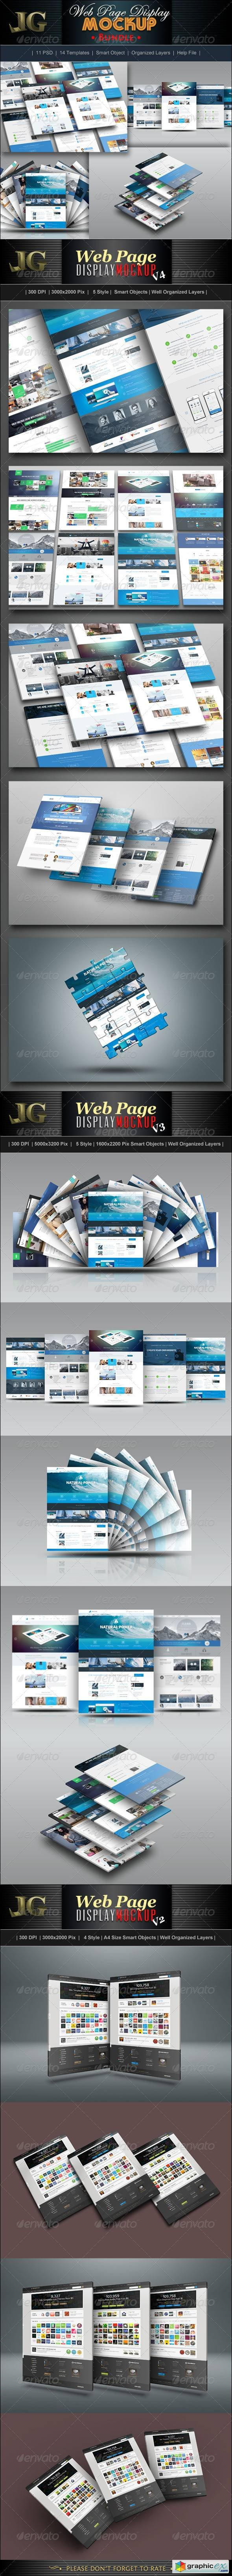 Website Display Mockup Bundle